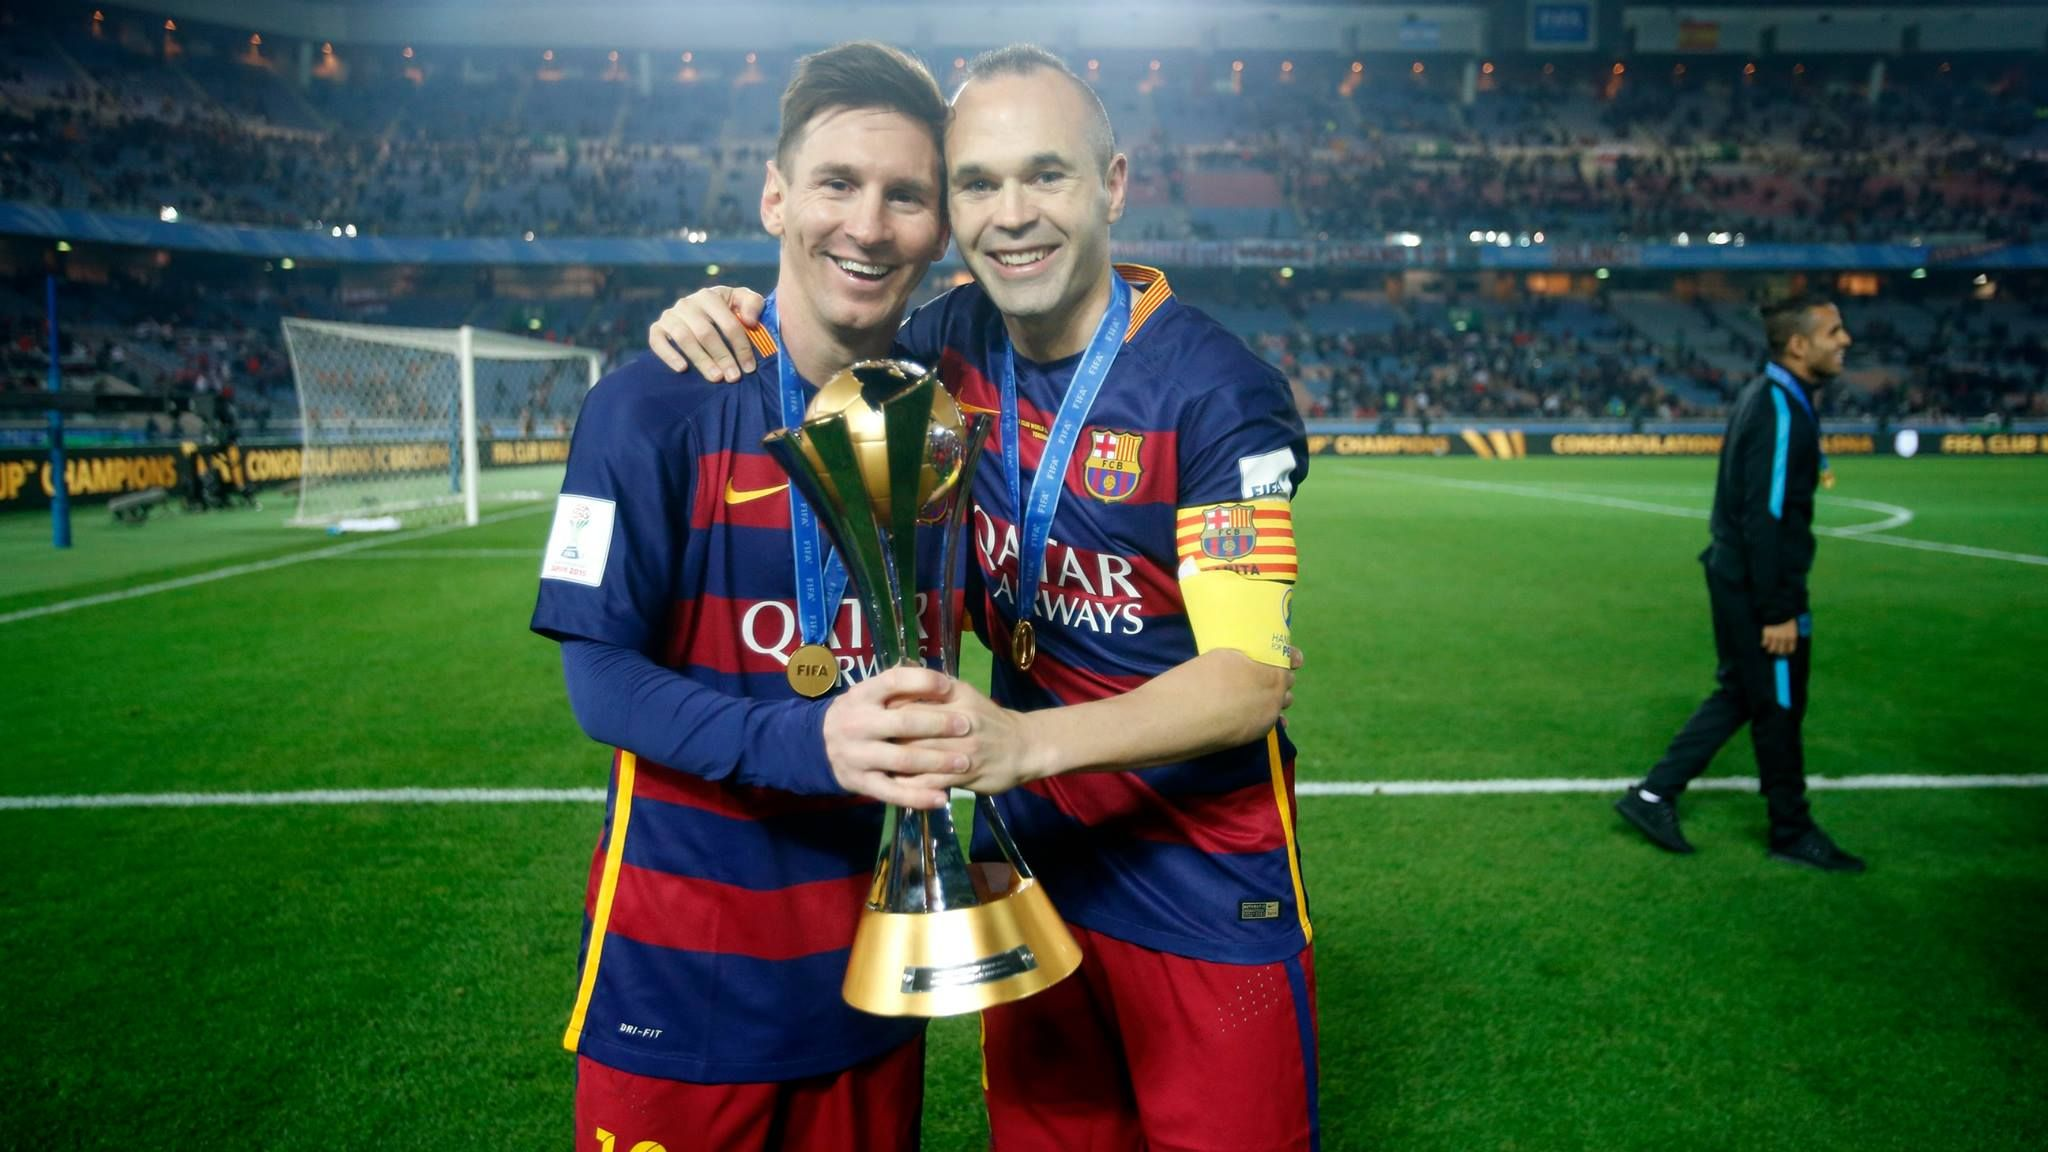 Clubs World Cup celebrations #FCBarcelona #ClubWorldCup #CampionsFCB  #FansFCB #Messi #Iniesta · Fc BarceloneNouvelles ...